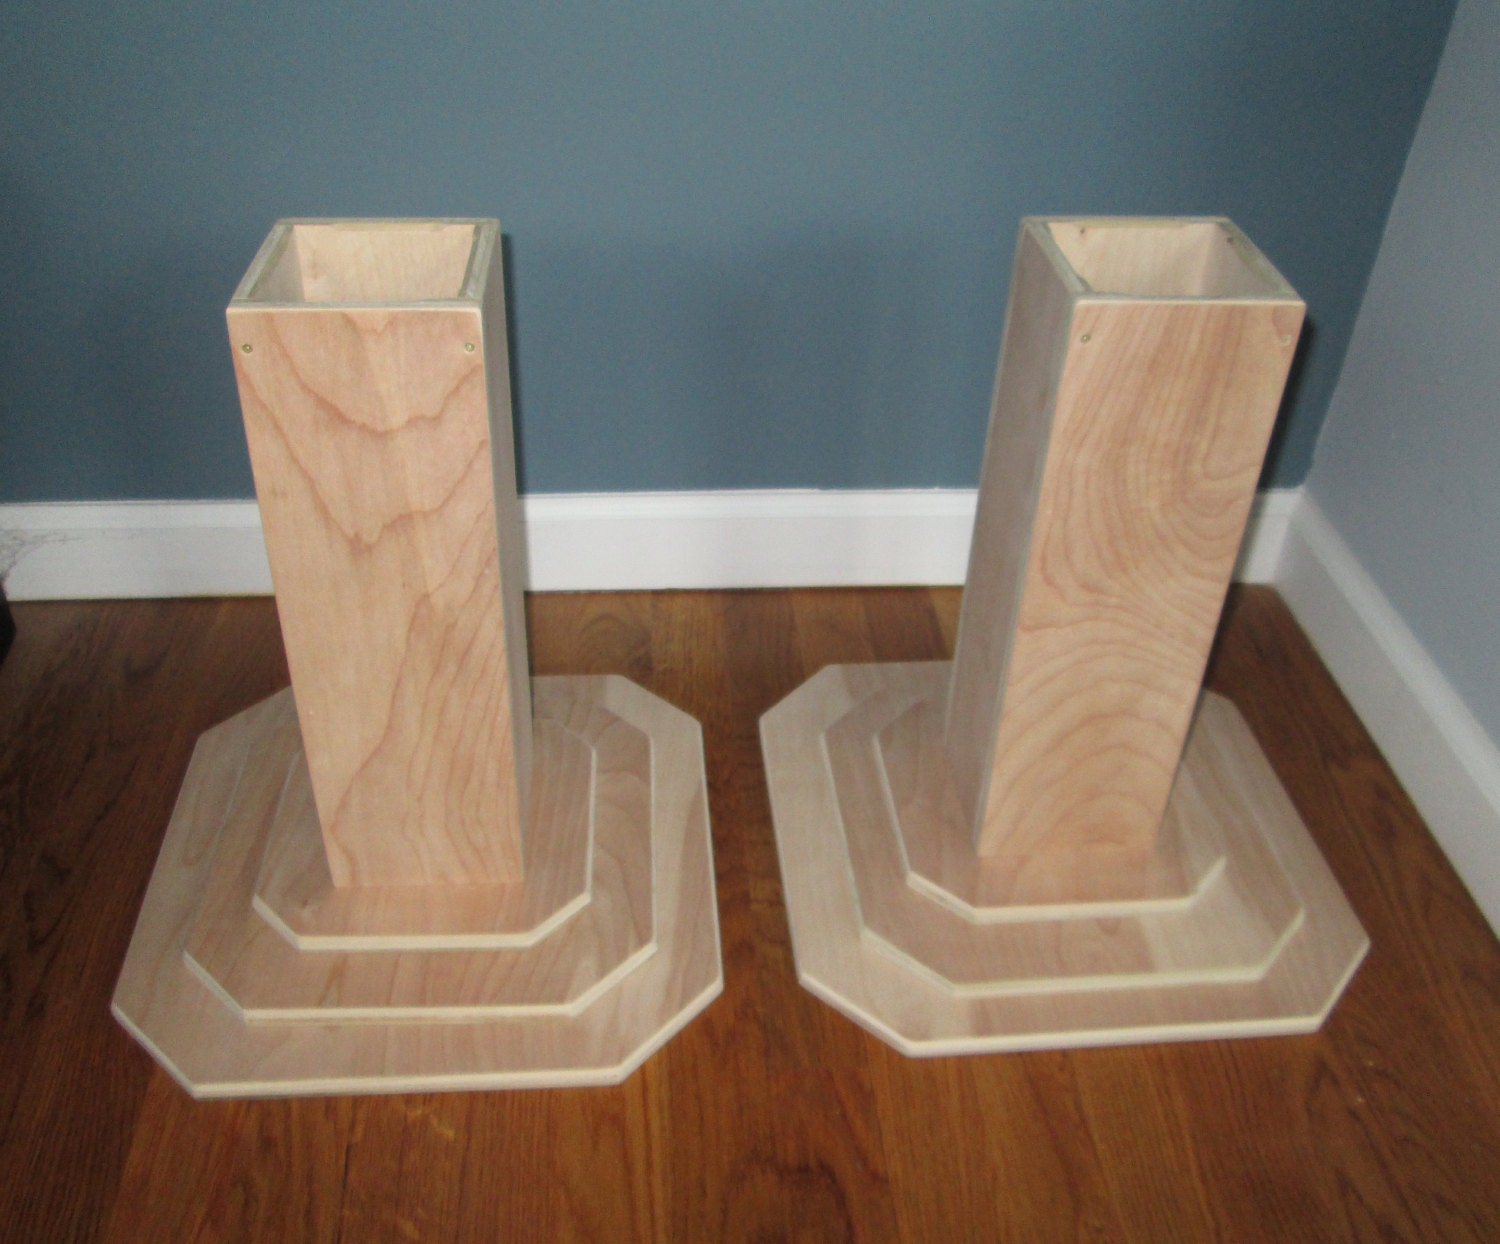 Furniture Risers 12 Inch All Wood Construction Unfinished